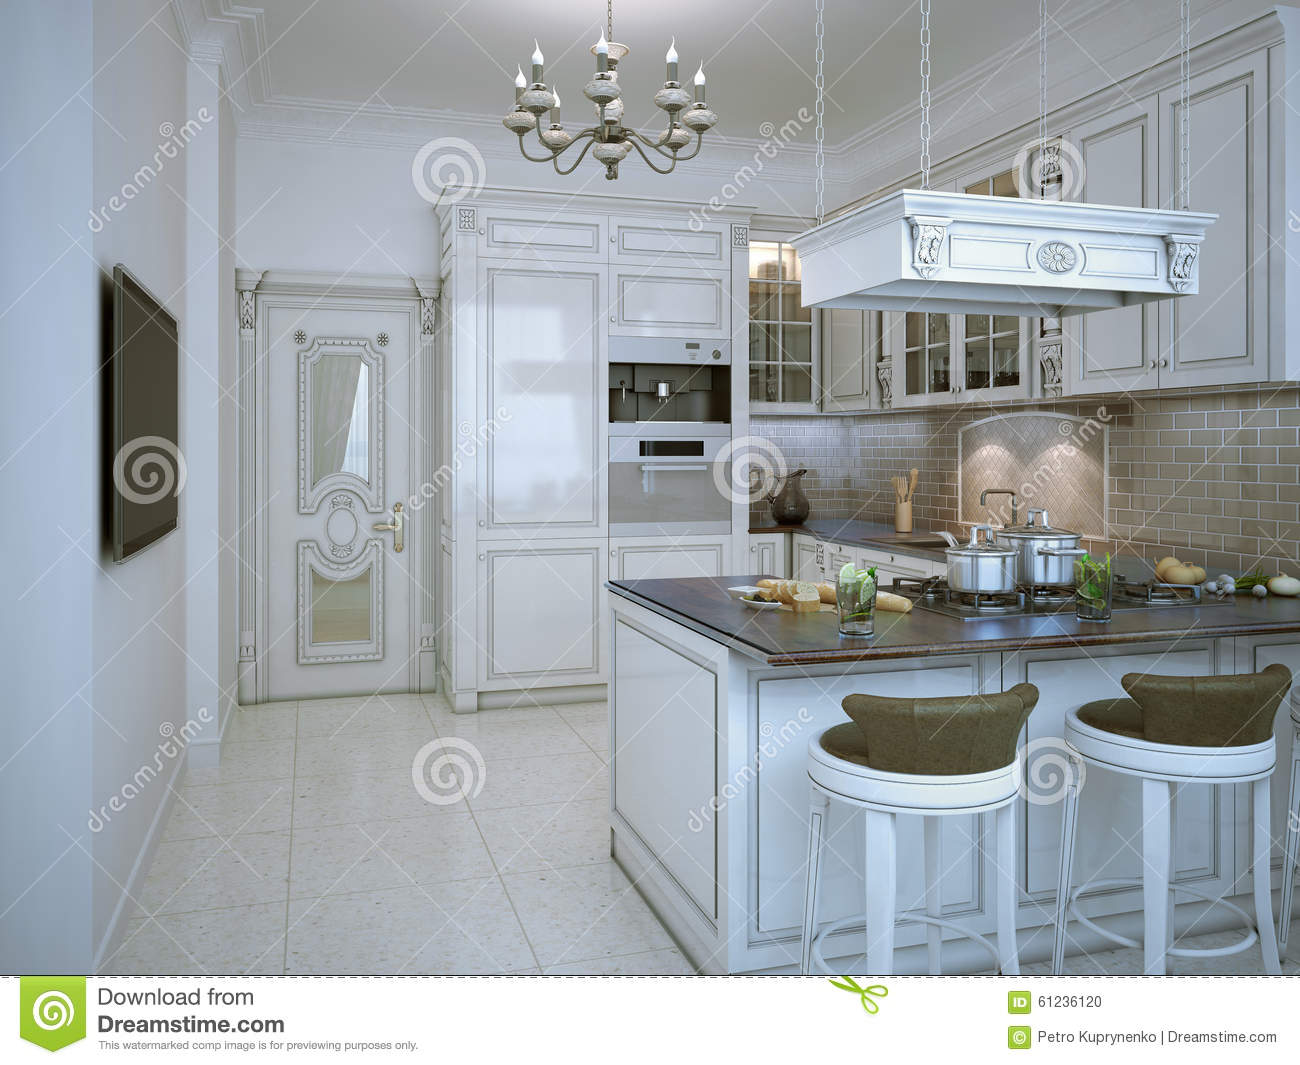 Glossy Kitchen Art Deco Style Stock Photo